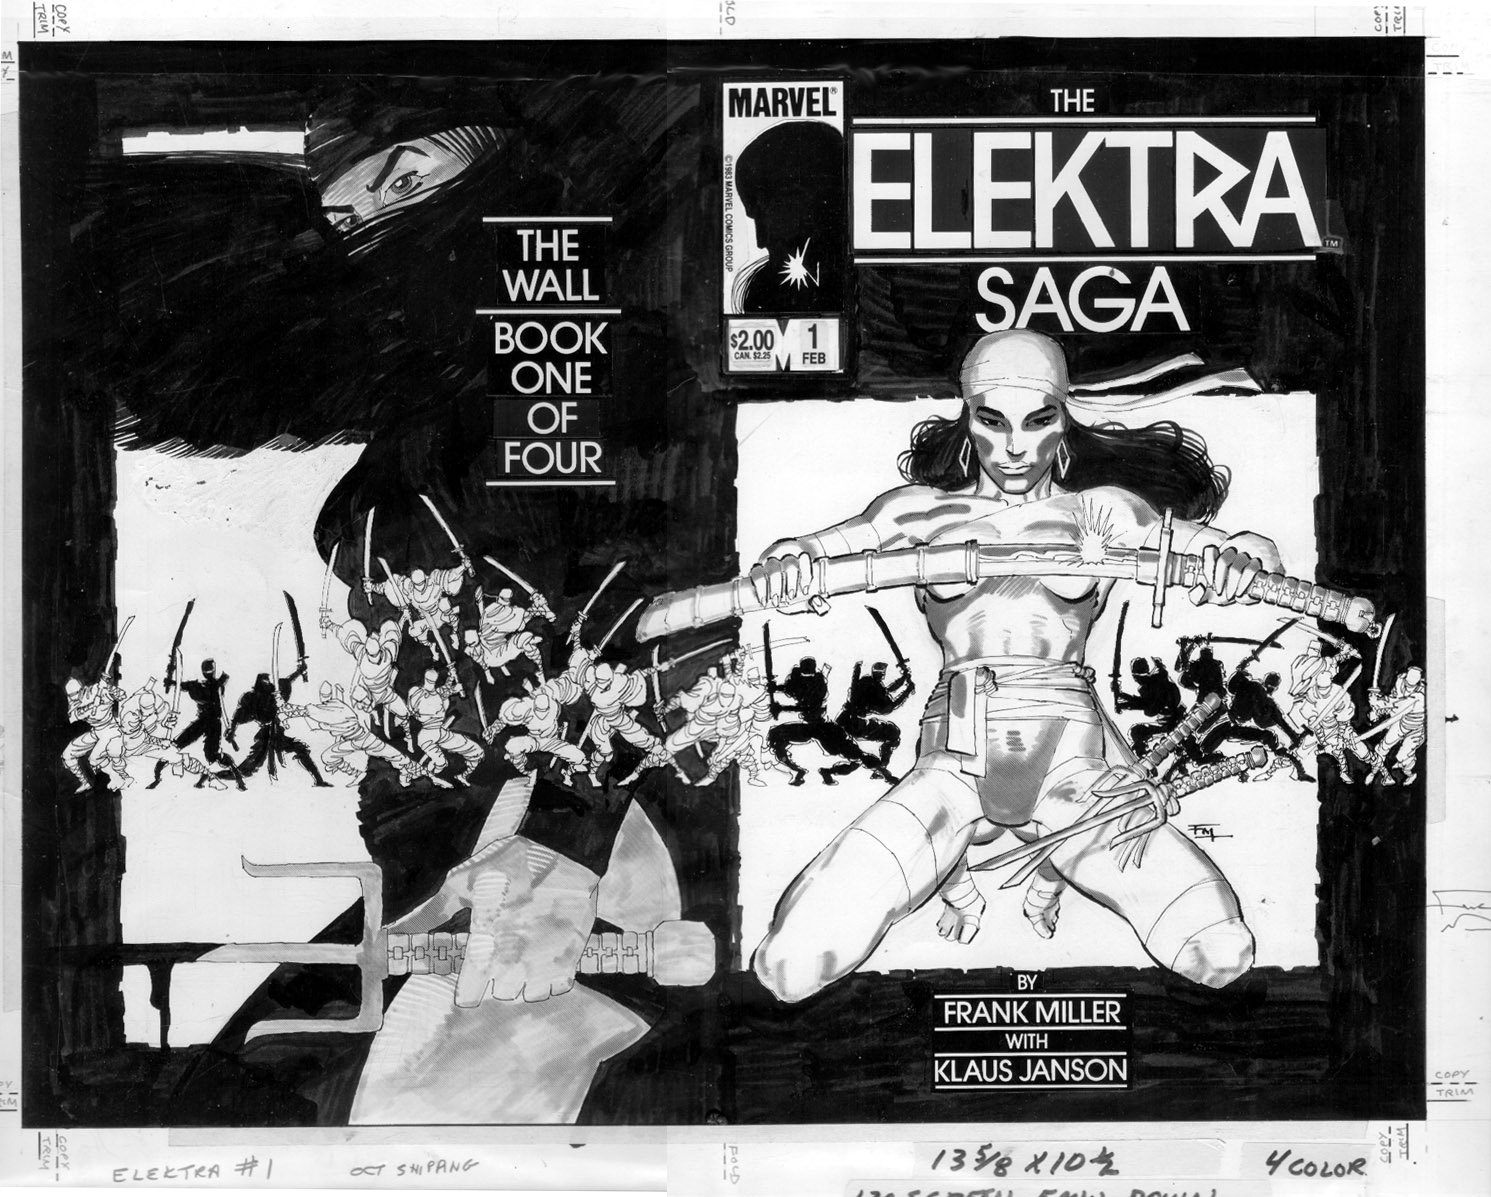 MILLER, FRANK - The Elektra Saga #1 wraparound cover - 1st Electra starring cover , with new story - 1983 Comic Art